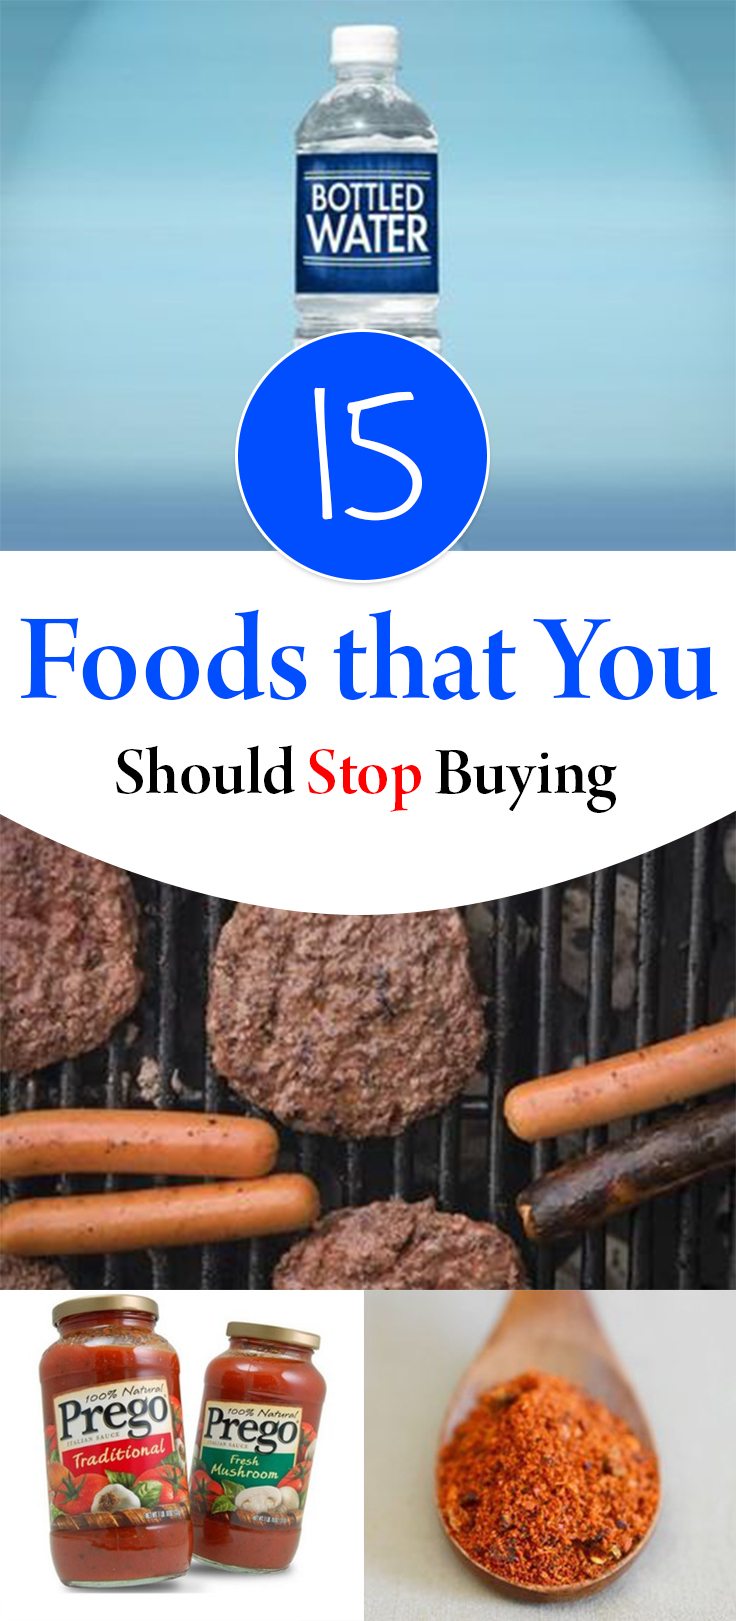 Foods to stop buying, money saving tricks, popular pin, money saving tips, frugal living, grocery shopping hacks.